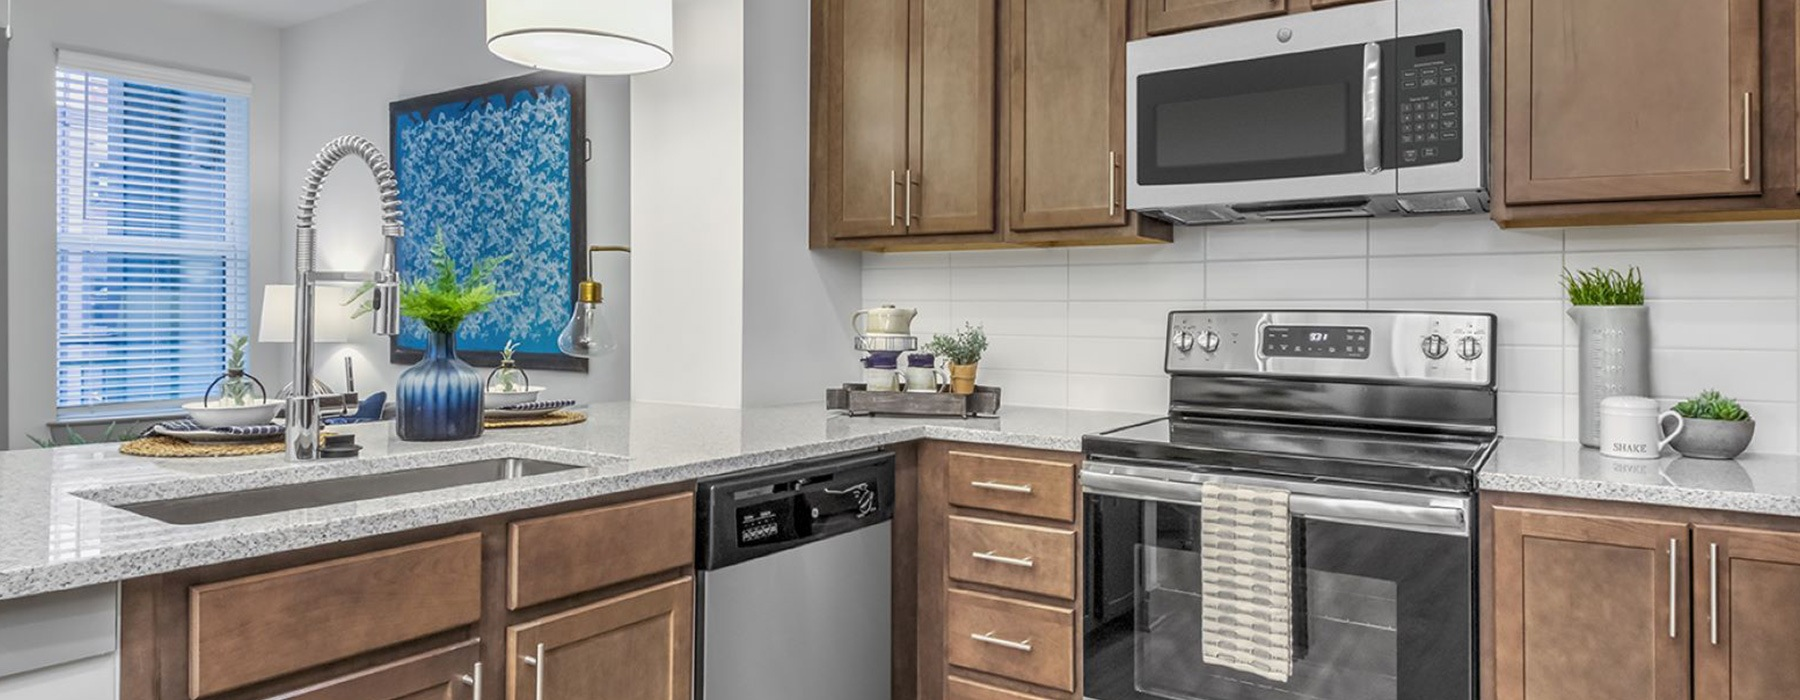 spacious kitchen with easy access to the living room